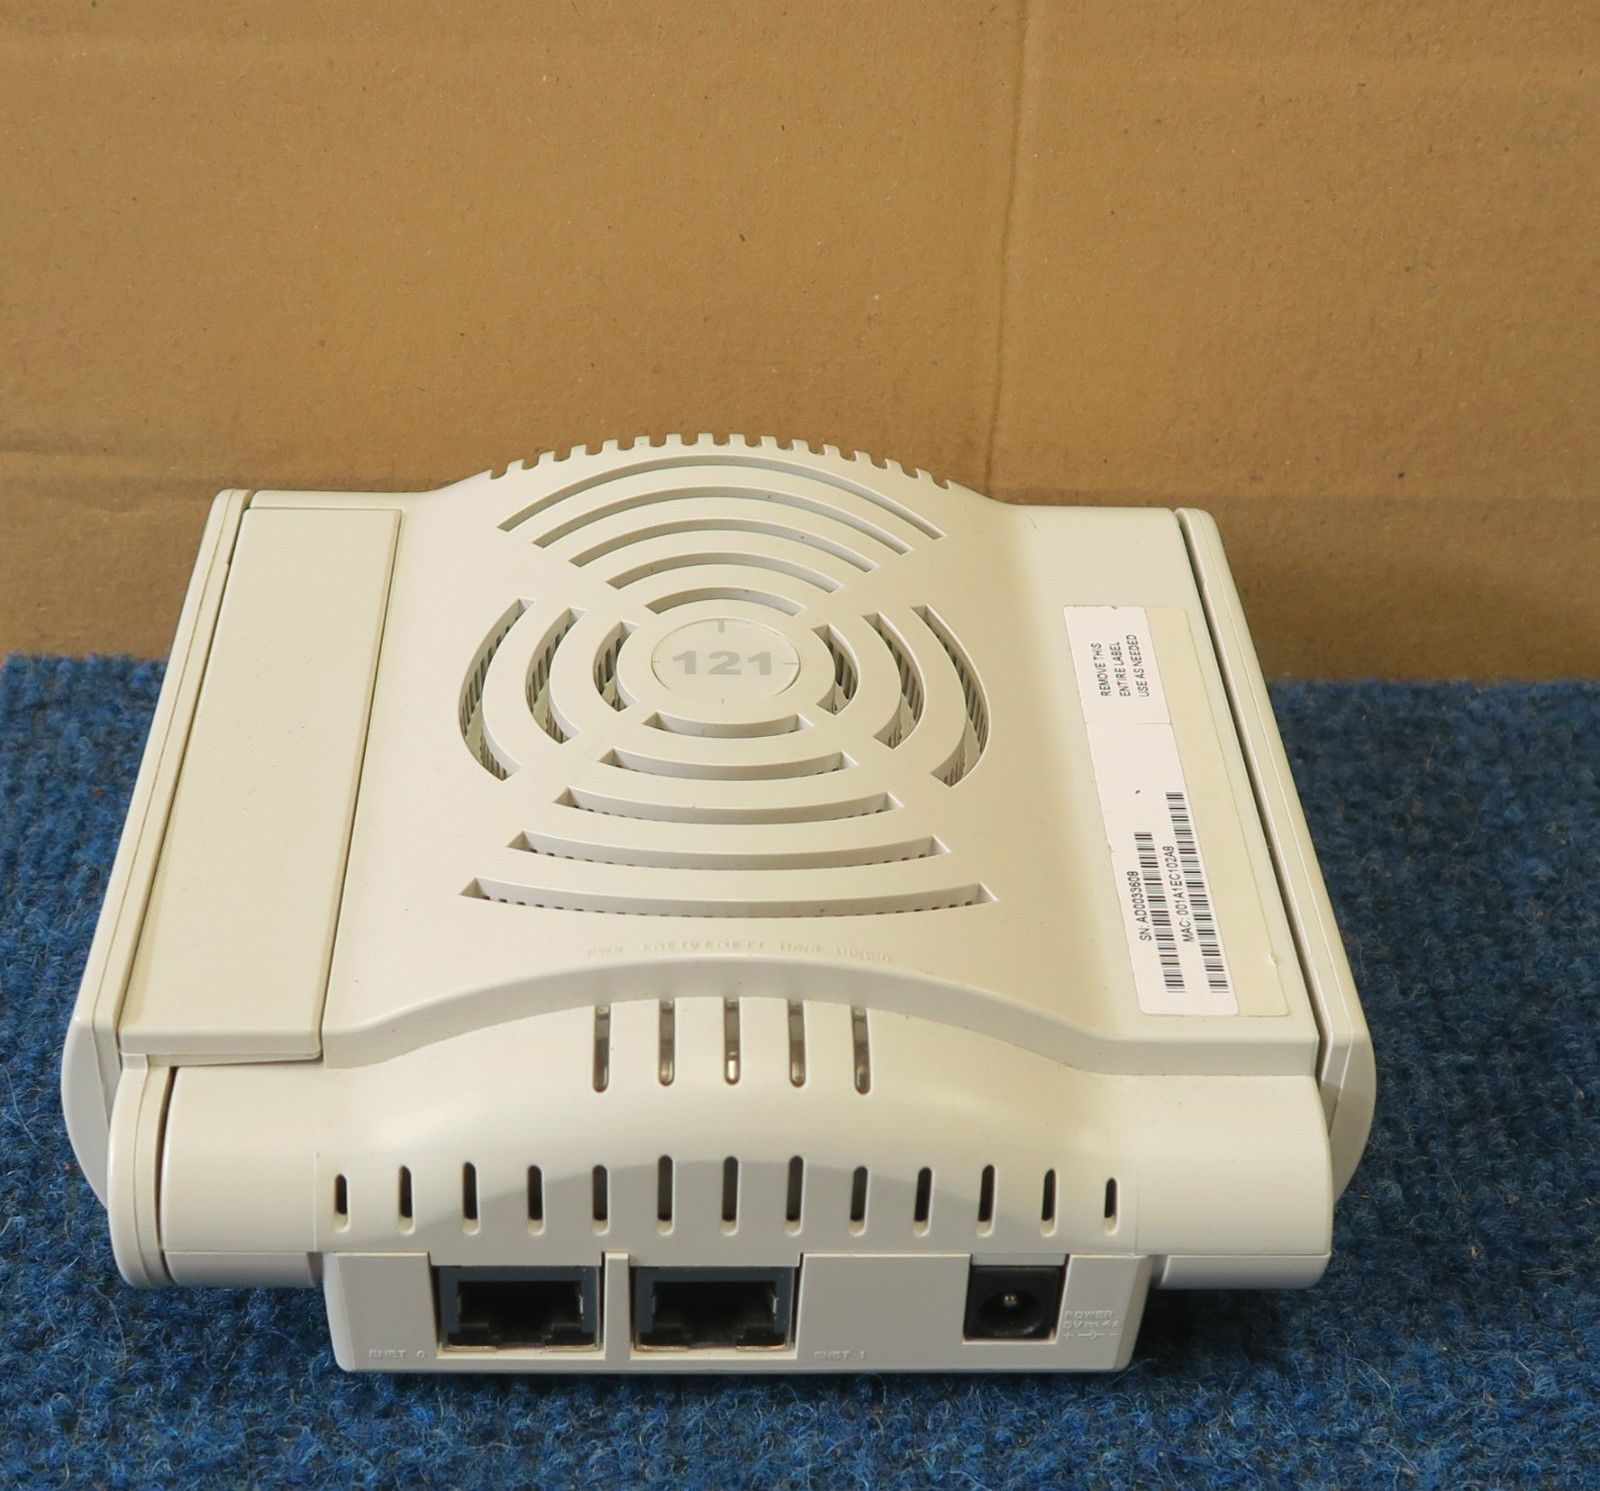 Aruba AP-121 - 802 11n Dual Band PoE Indoor WLAN Wireless Access Point